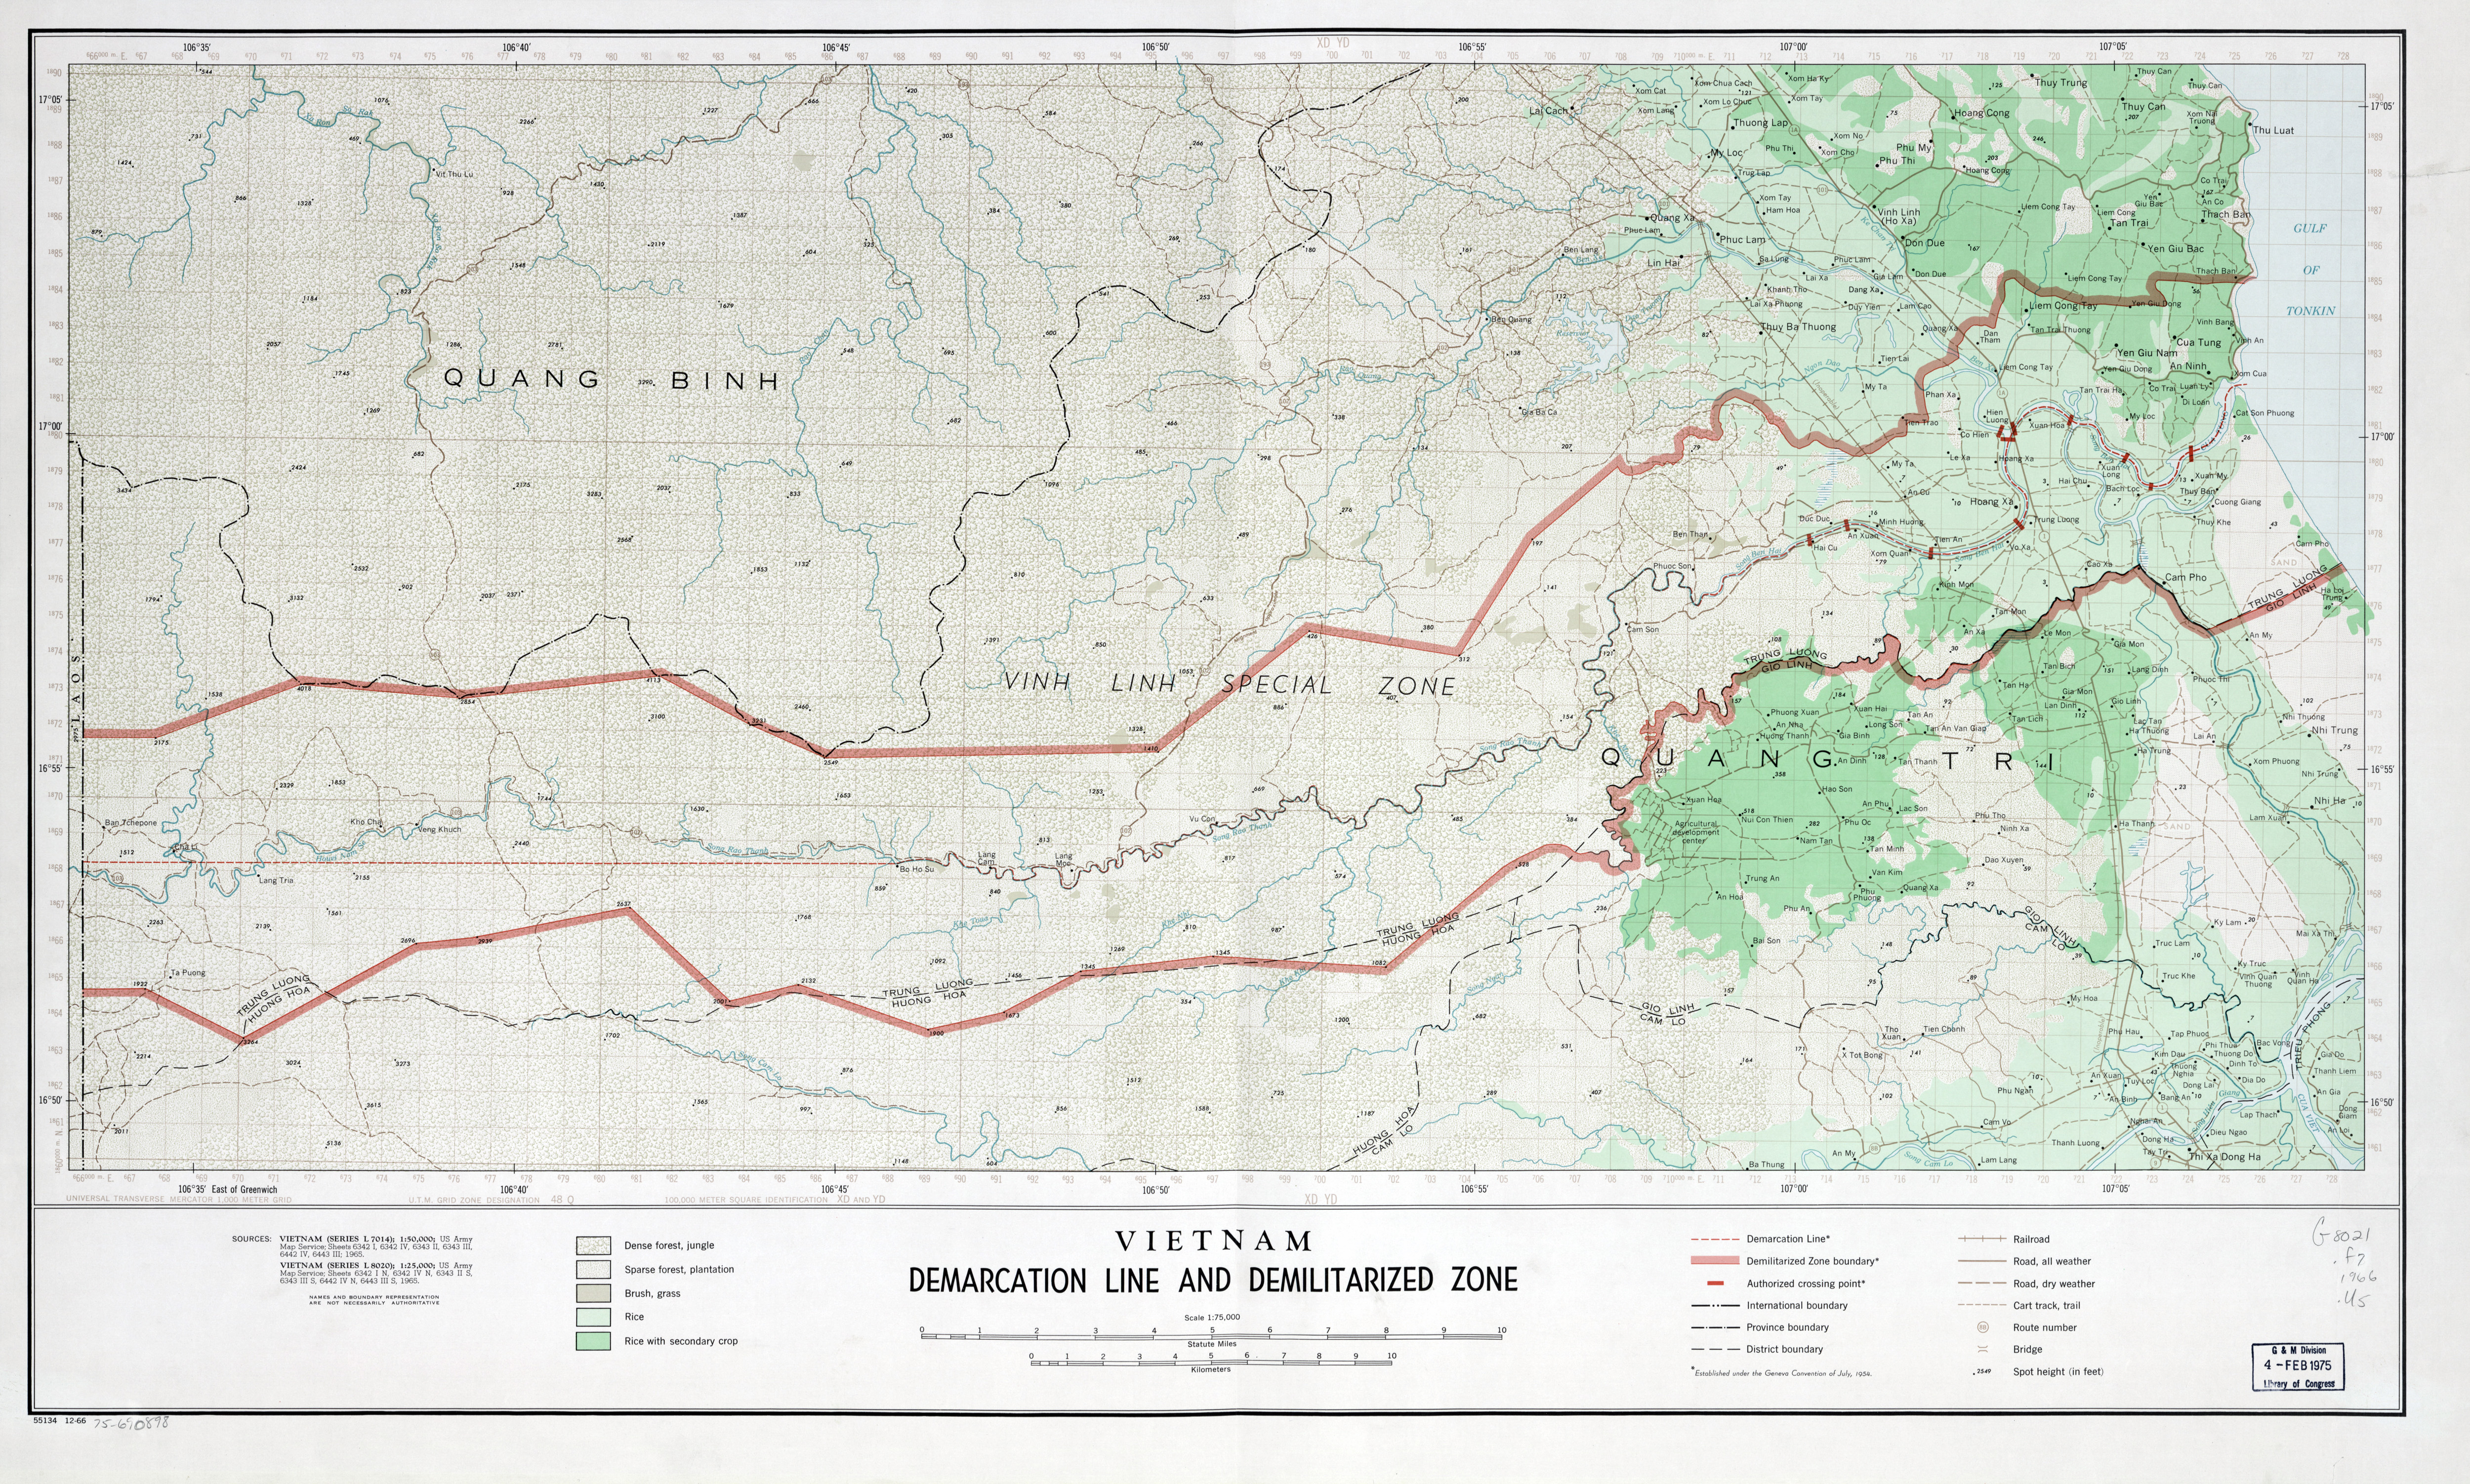 Large Detailed Vietnam Demarcation Line And Demilitarized Zone Map